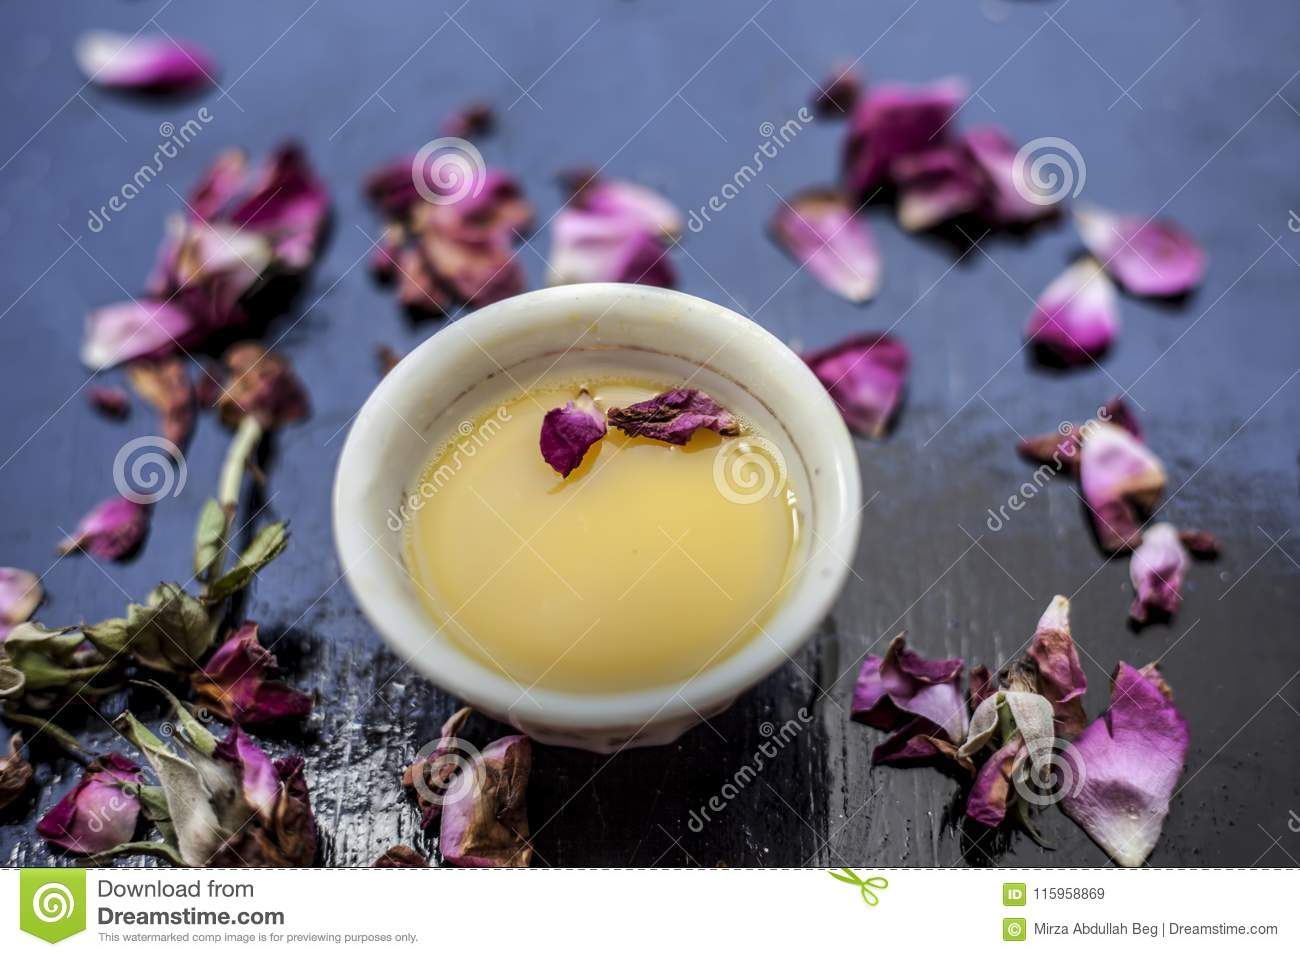 Organic and herbal face pack of Honey & Gram flour with its thick liquid mixture and some rose petals for good aroma on wooden sur